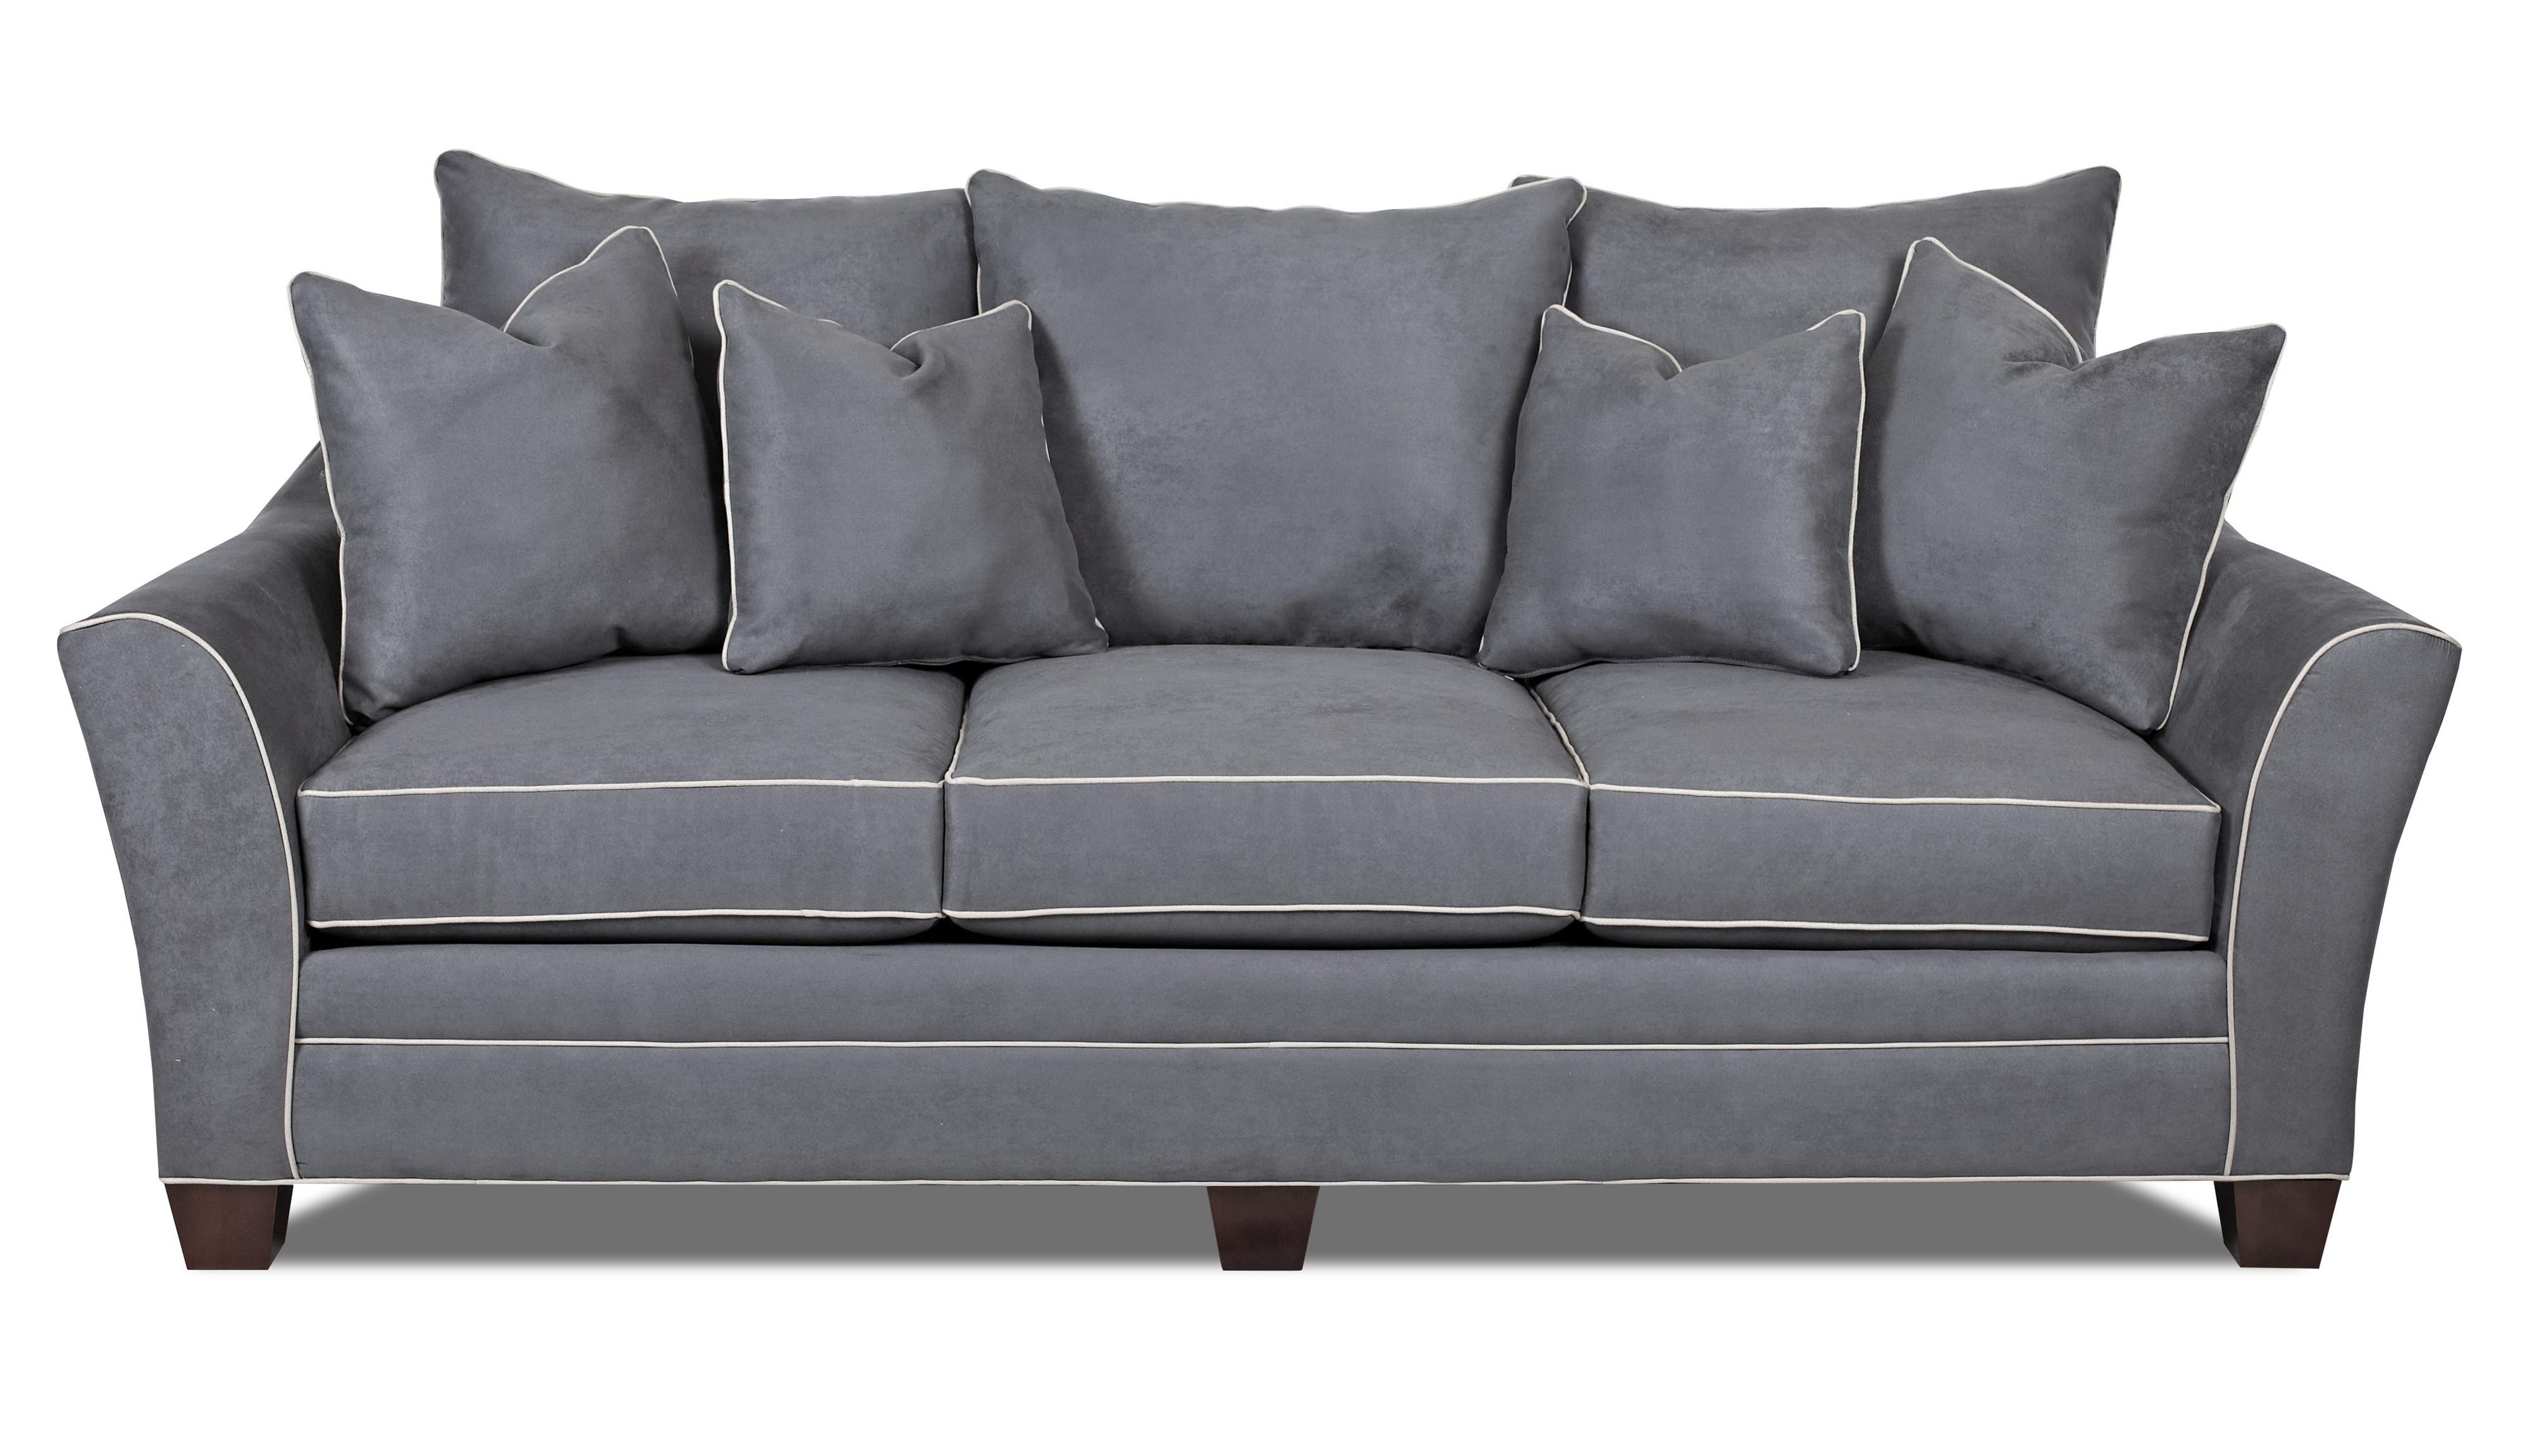 Contemporary Sofa with Block Feet by Klaussner